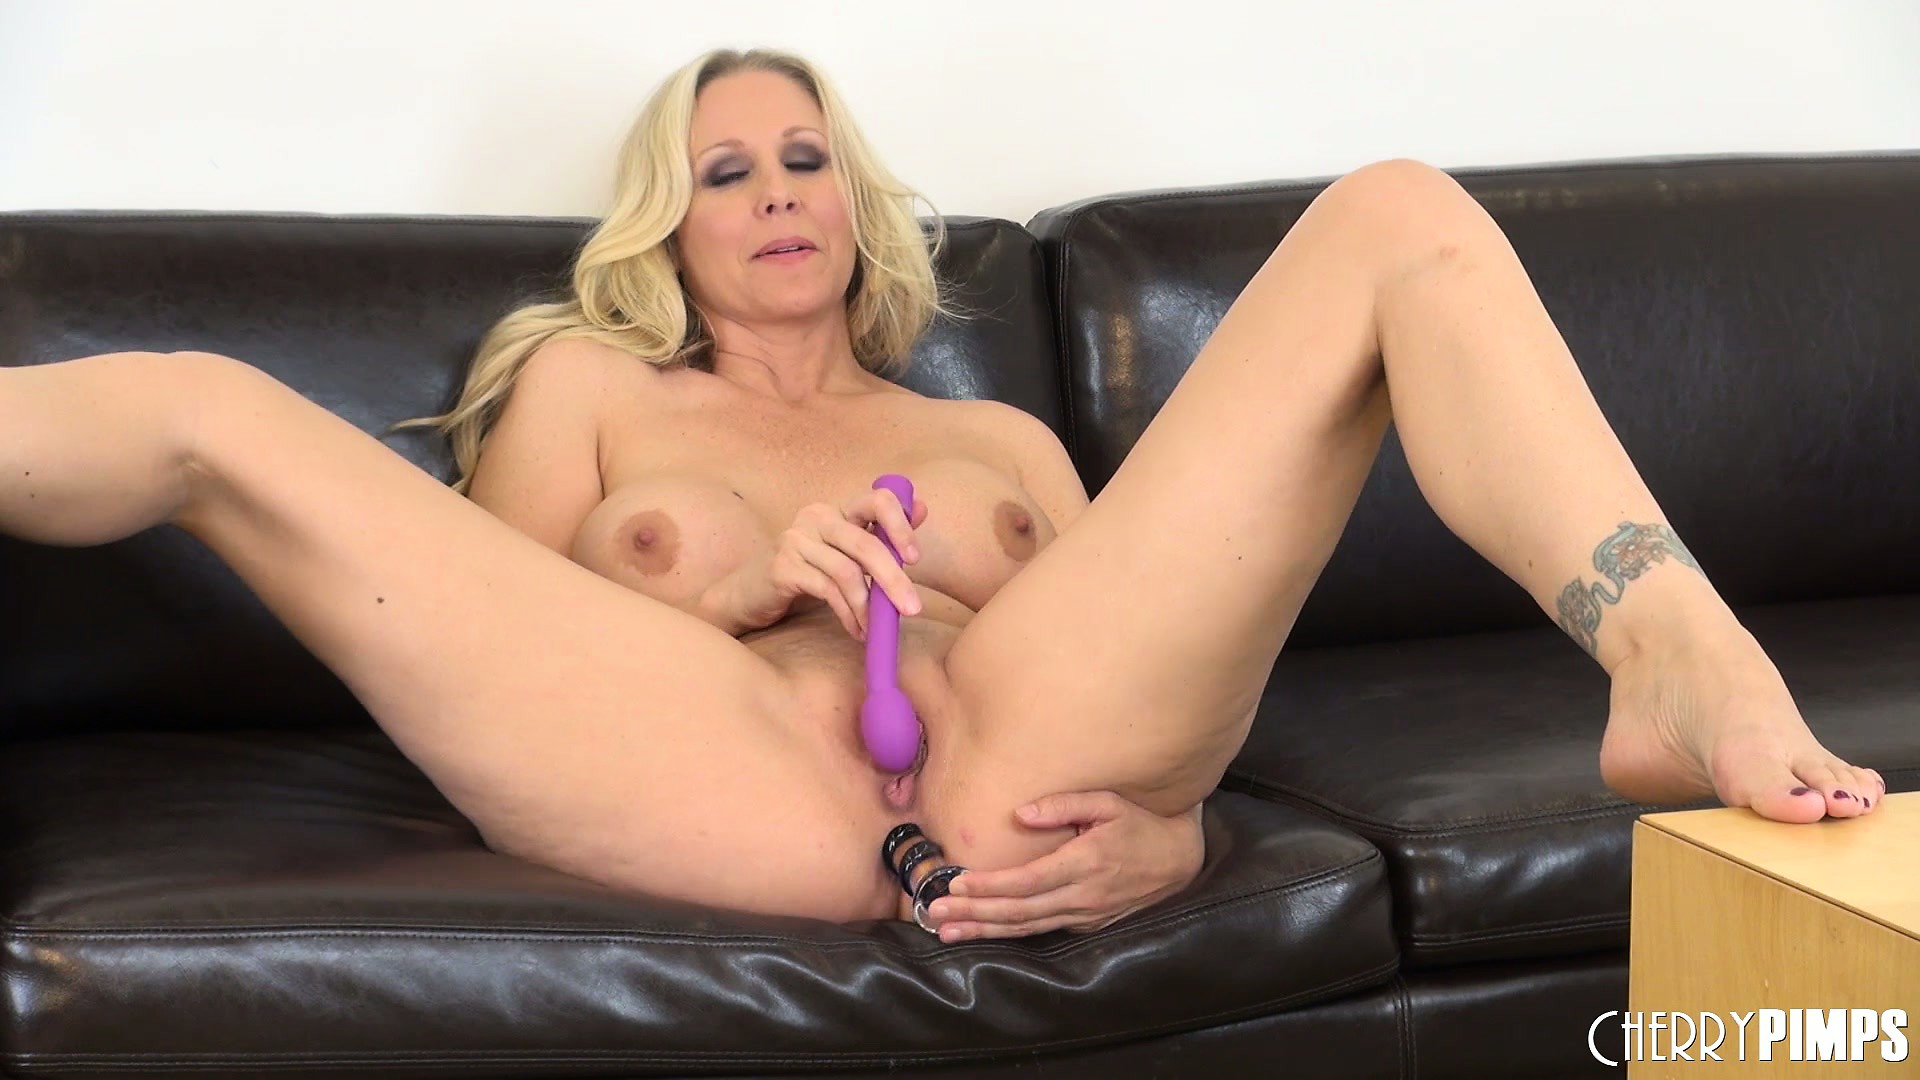 Porn Tube of Julia Ann Plugs Her Tight Pink Asshole And Dripping Wet Pussy At The Same Time